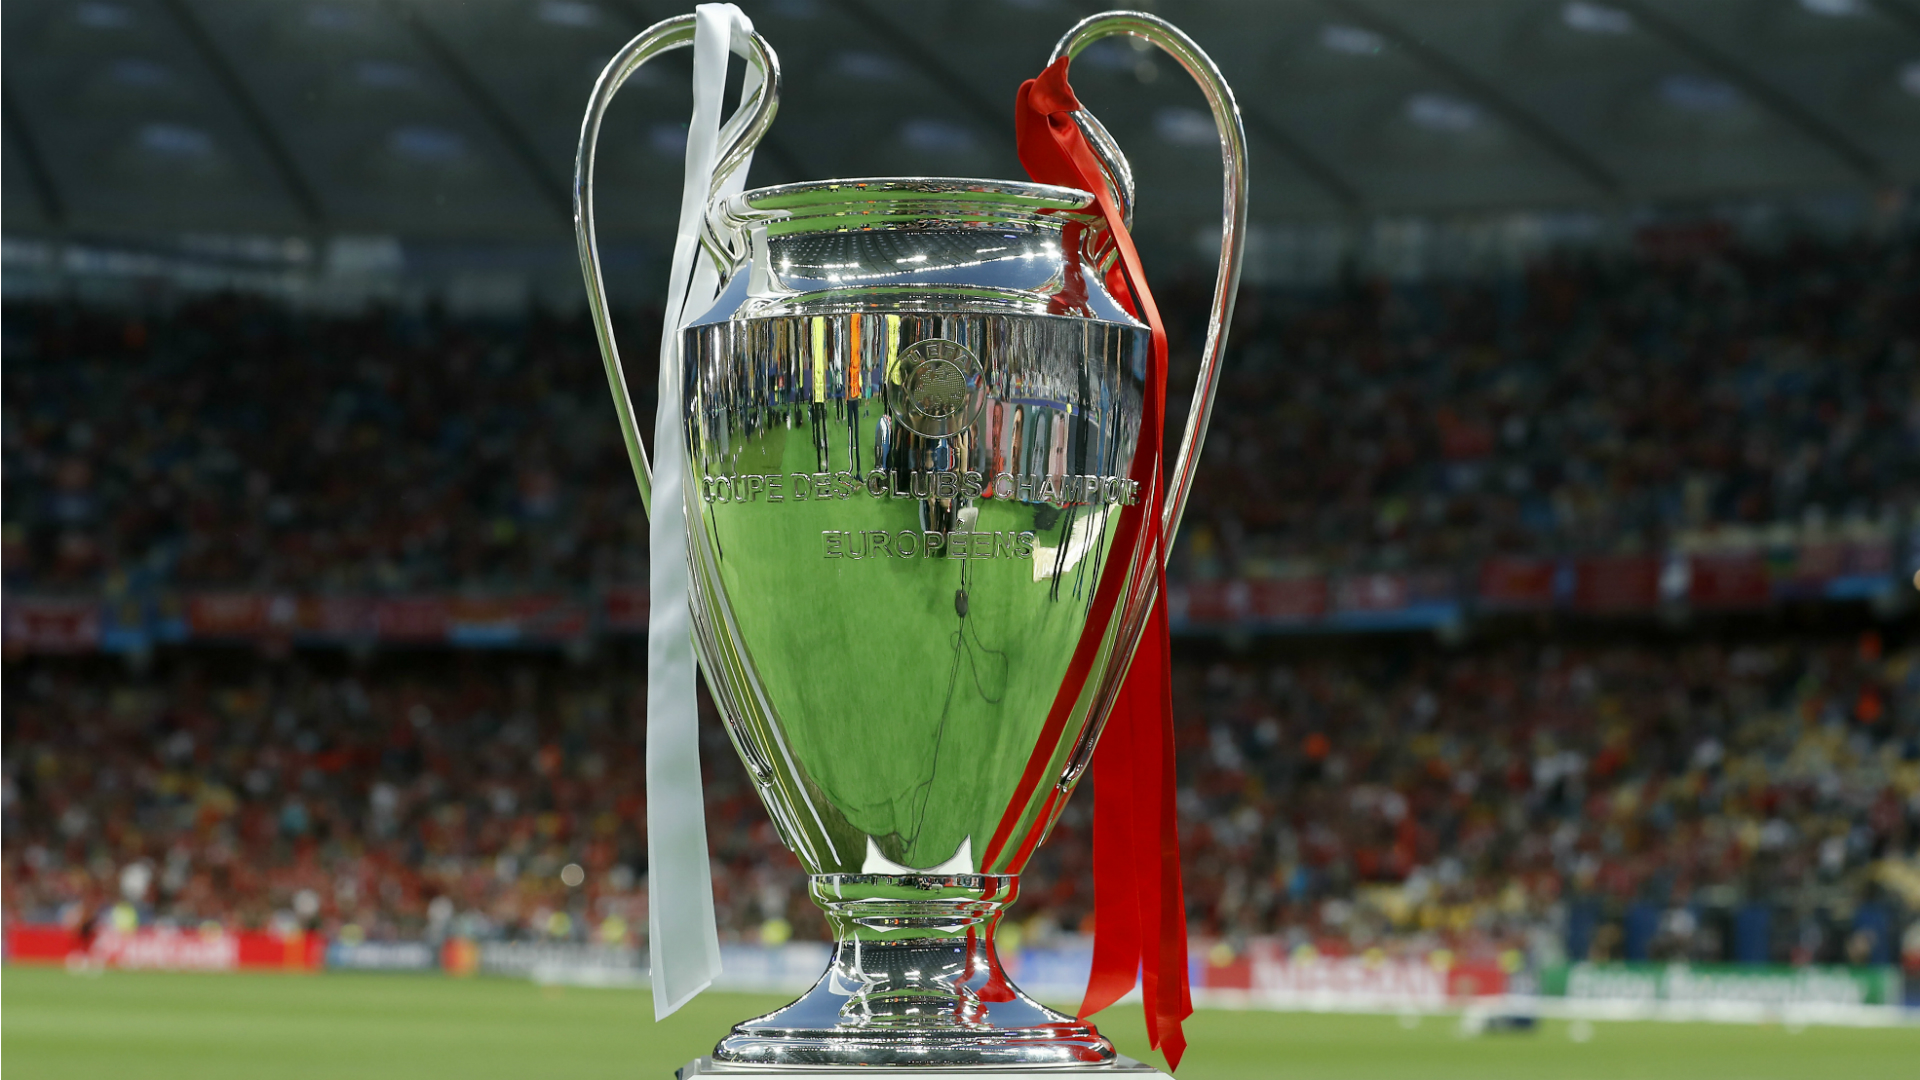 Champions League changes have been rejected by European Leagues following a board meeting in Warsaw.